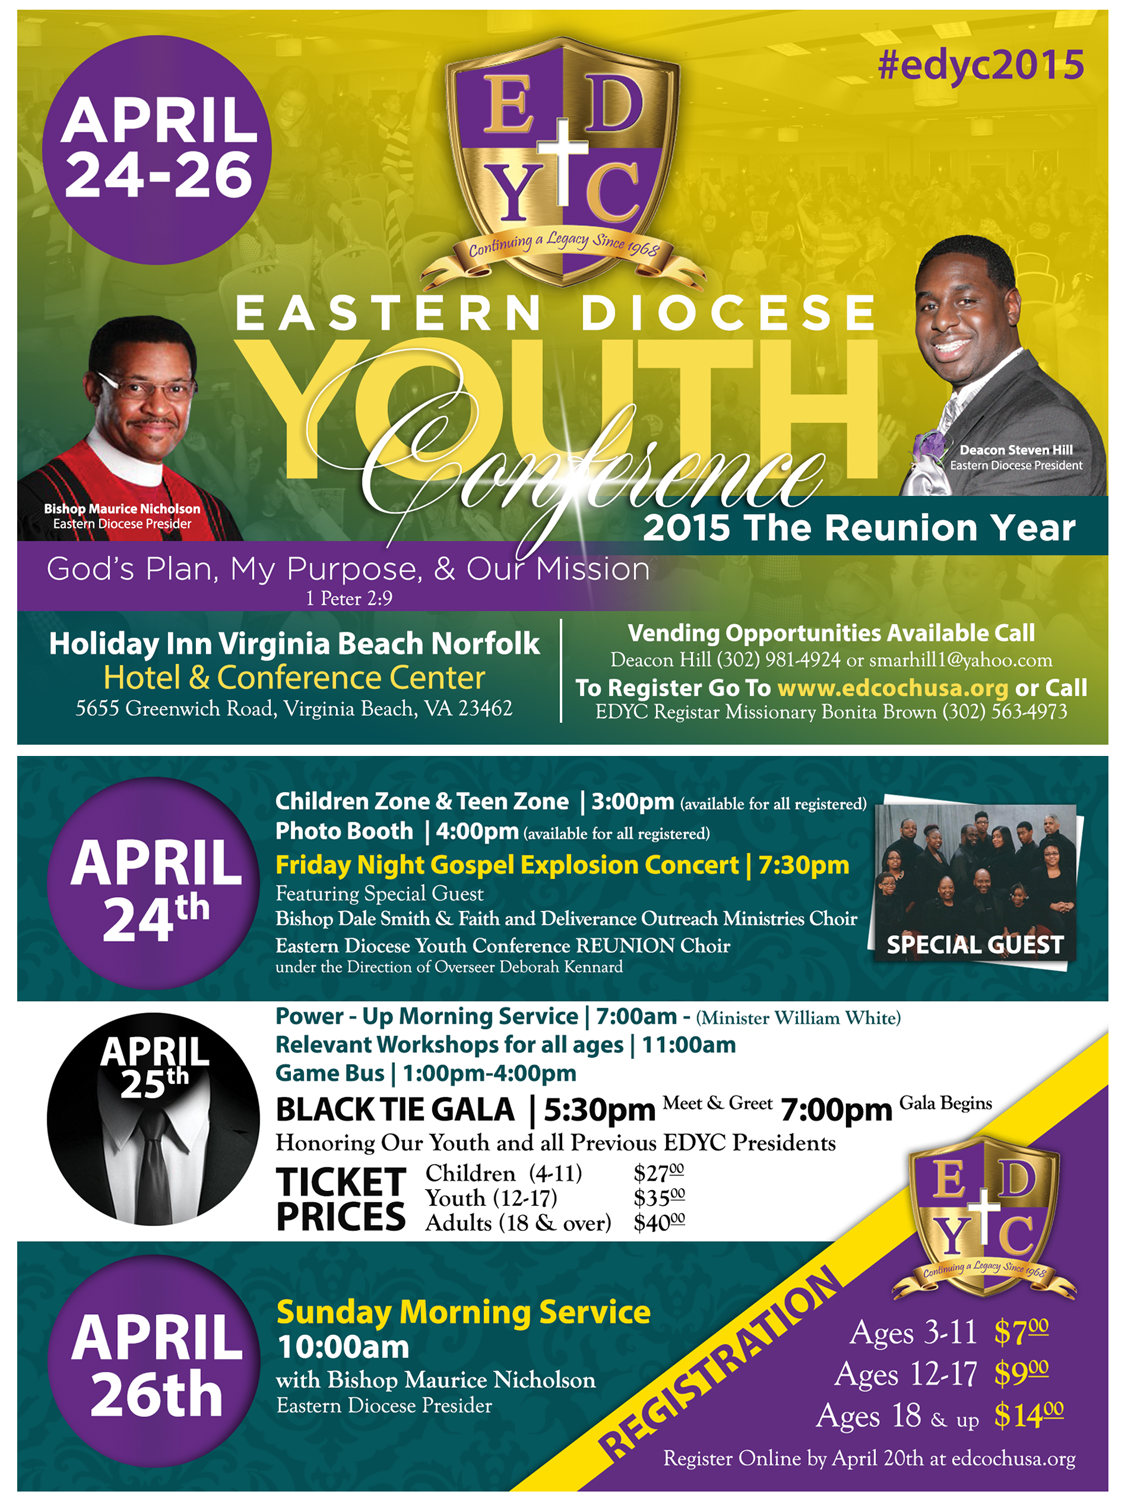 2015 Official Eastern Diocese Youth Conference Flyer